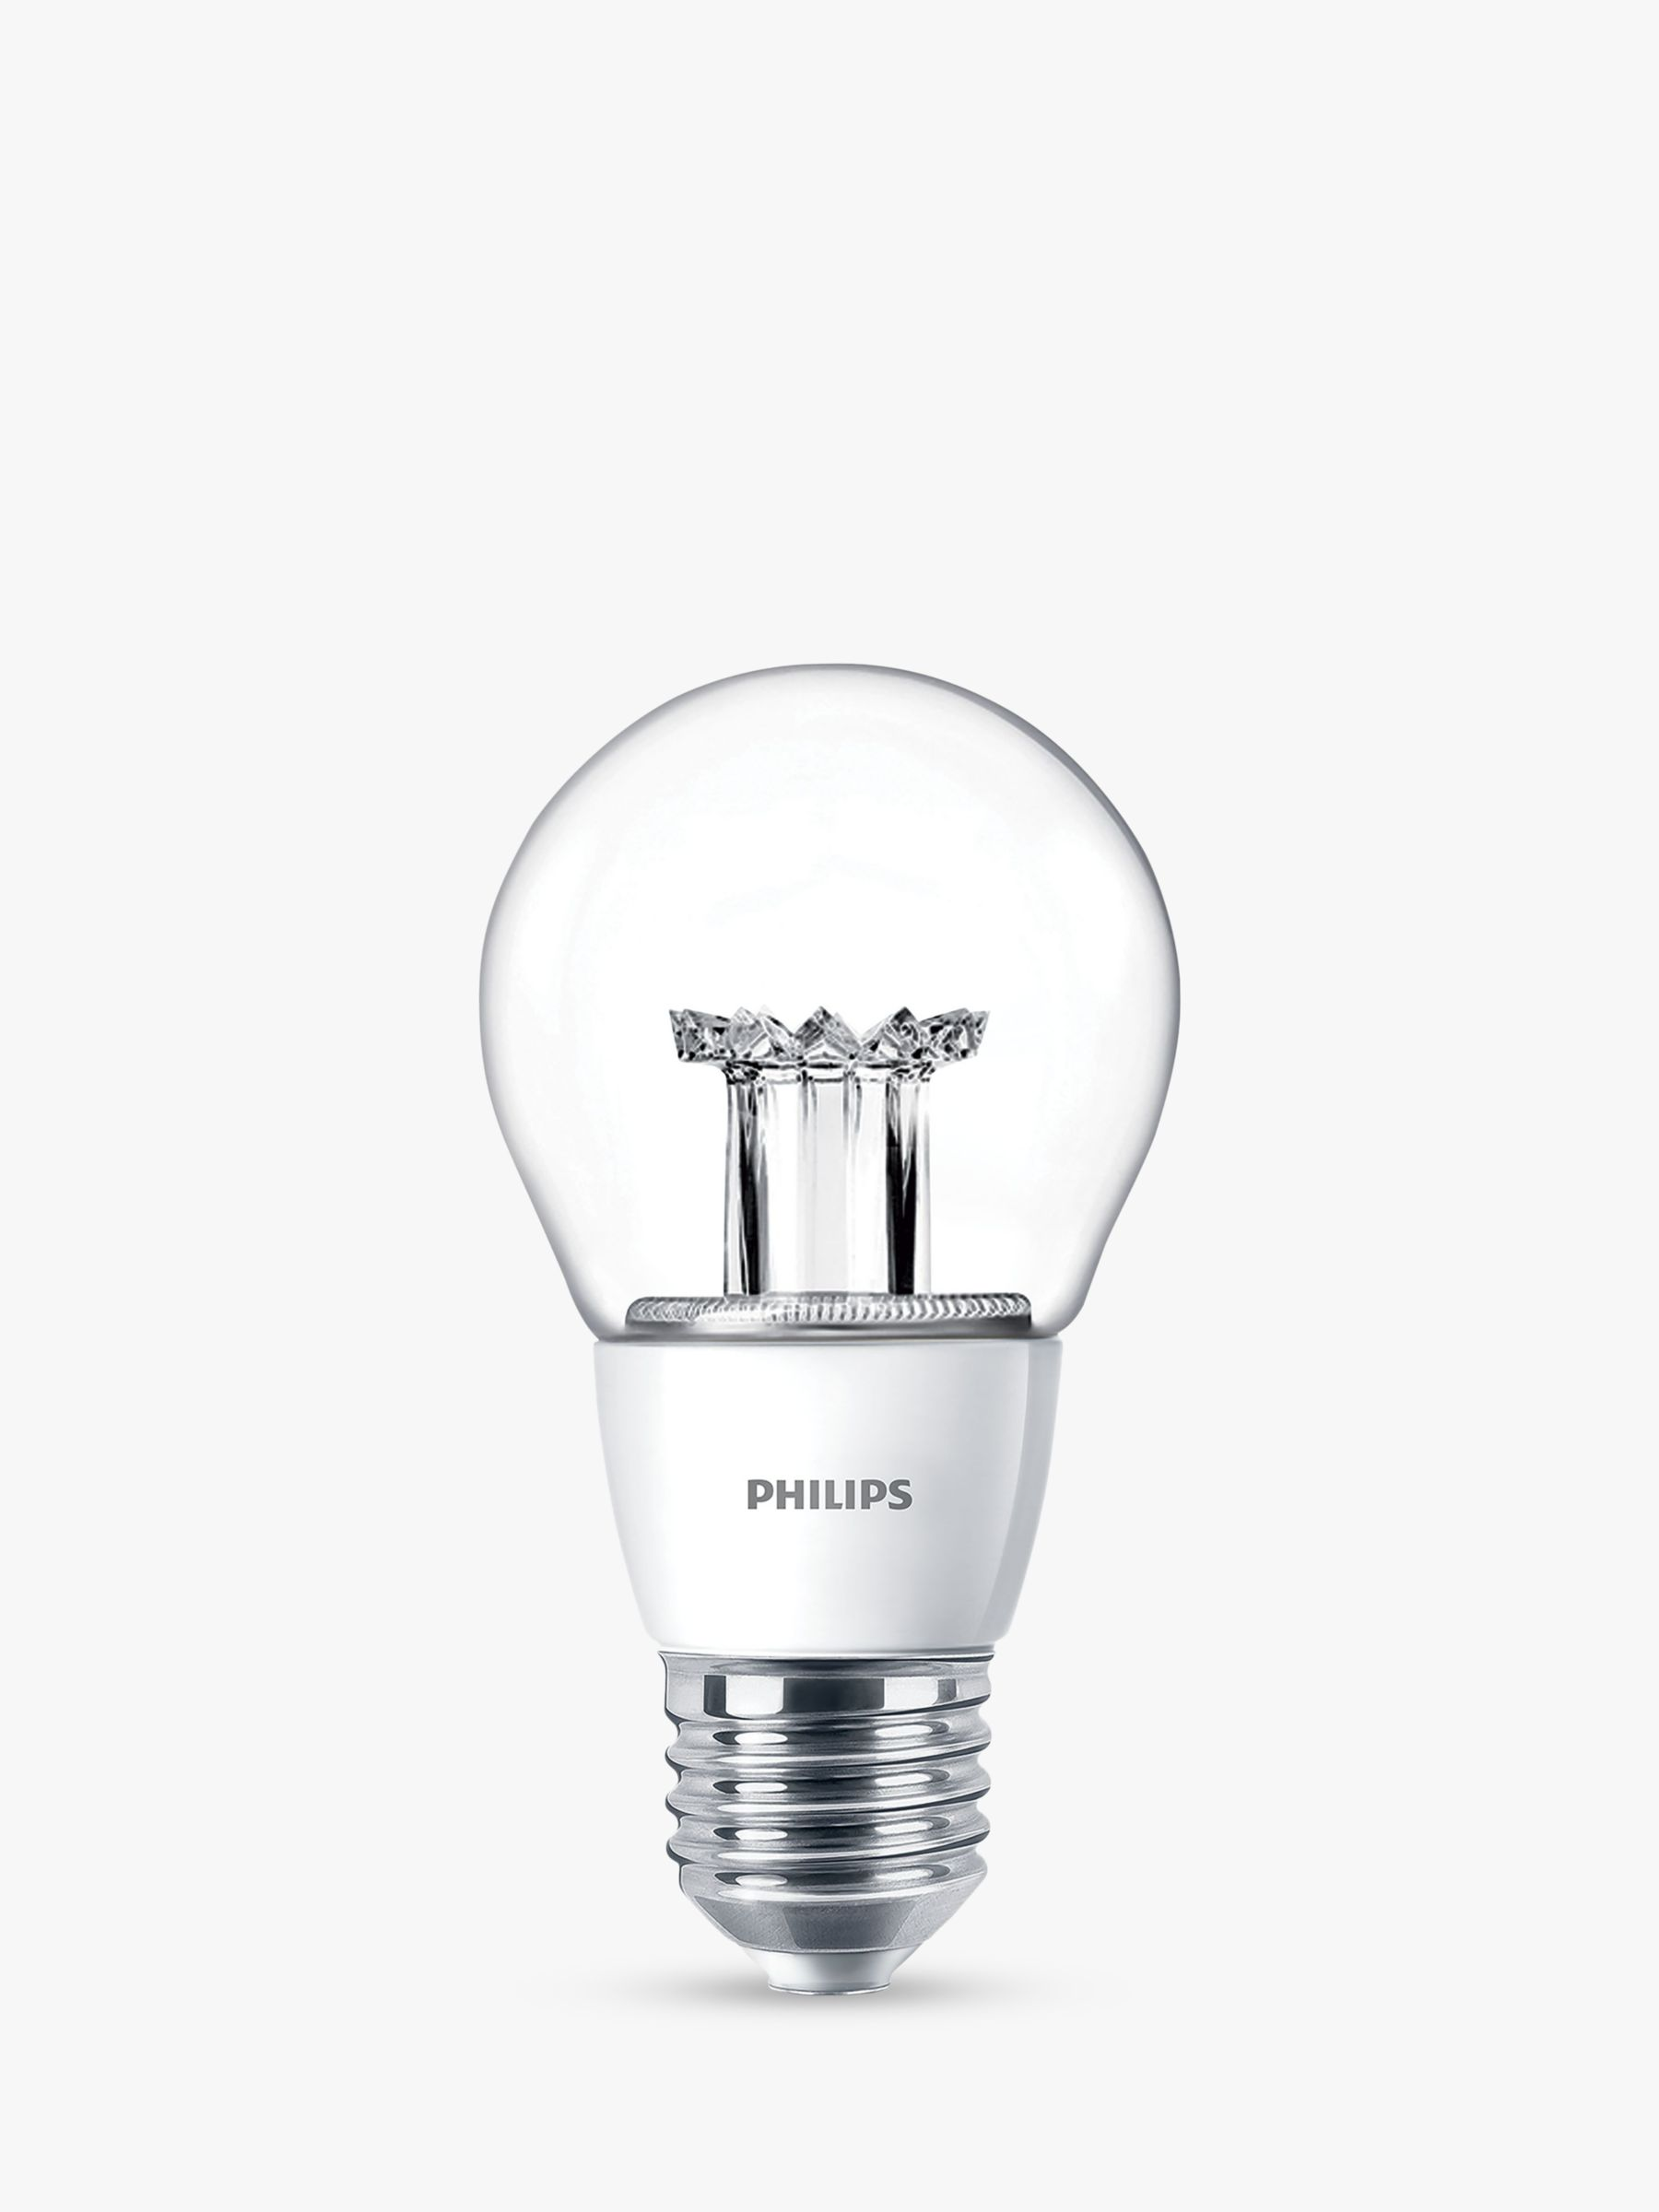 Philips Classic Led Philips 6w Es Led Classic Dimmable Light Bulb, Clear At